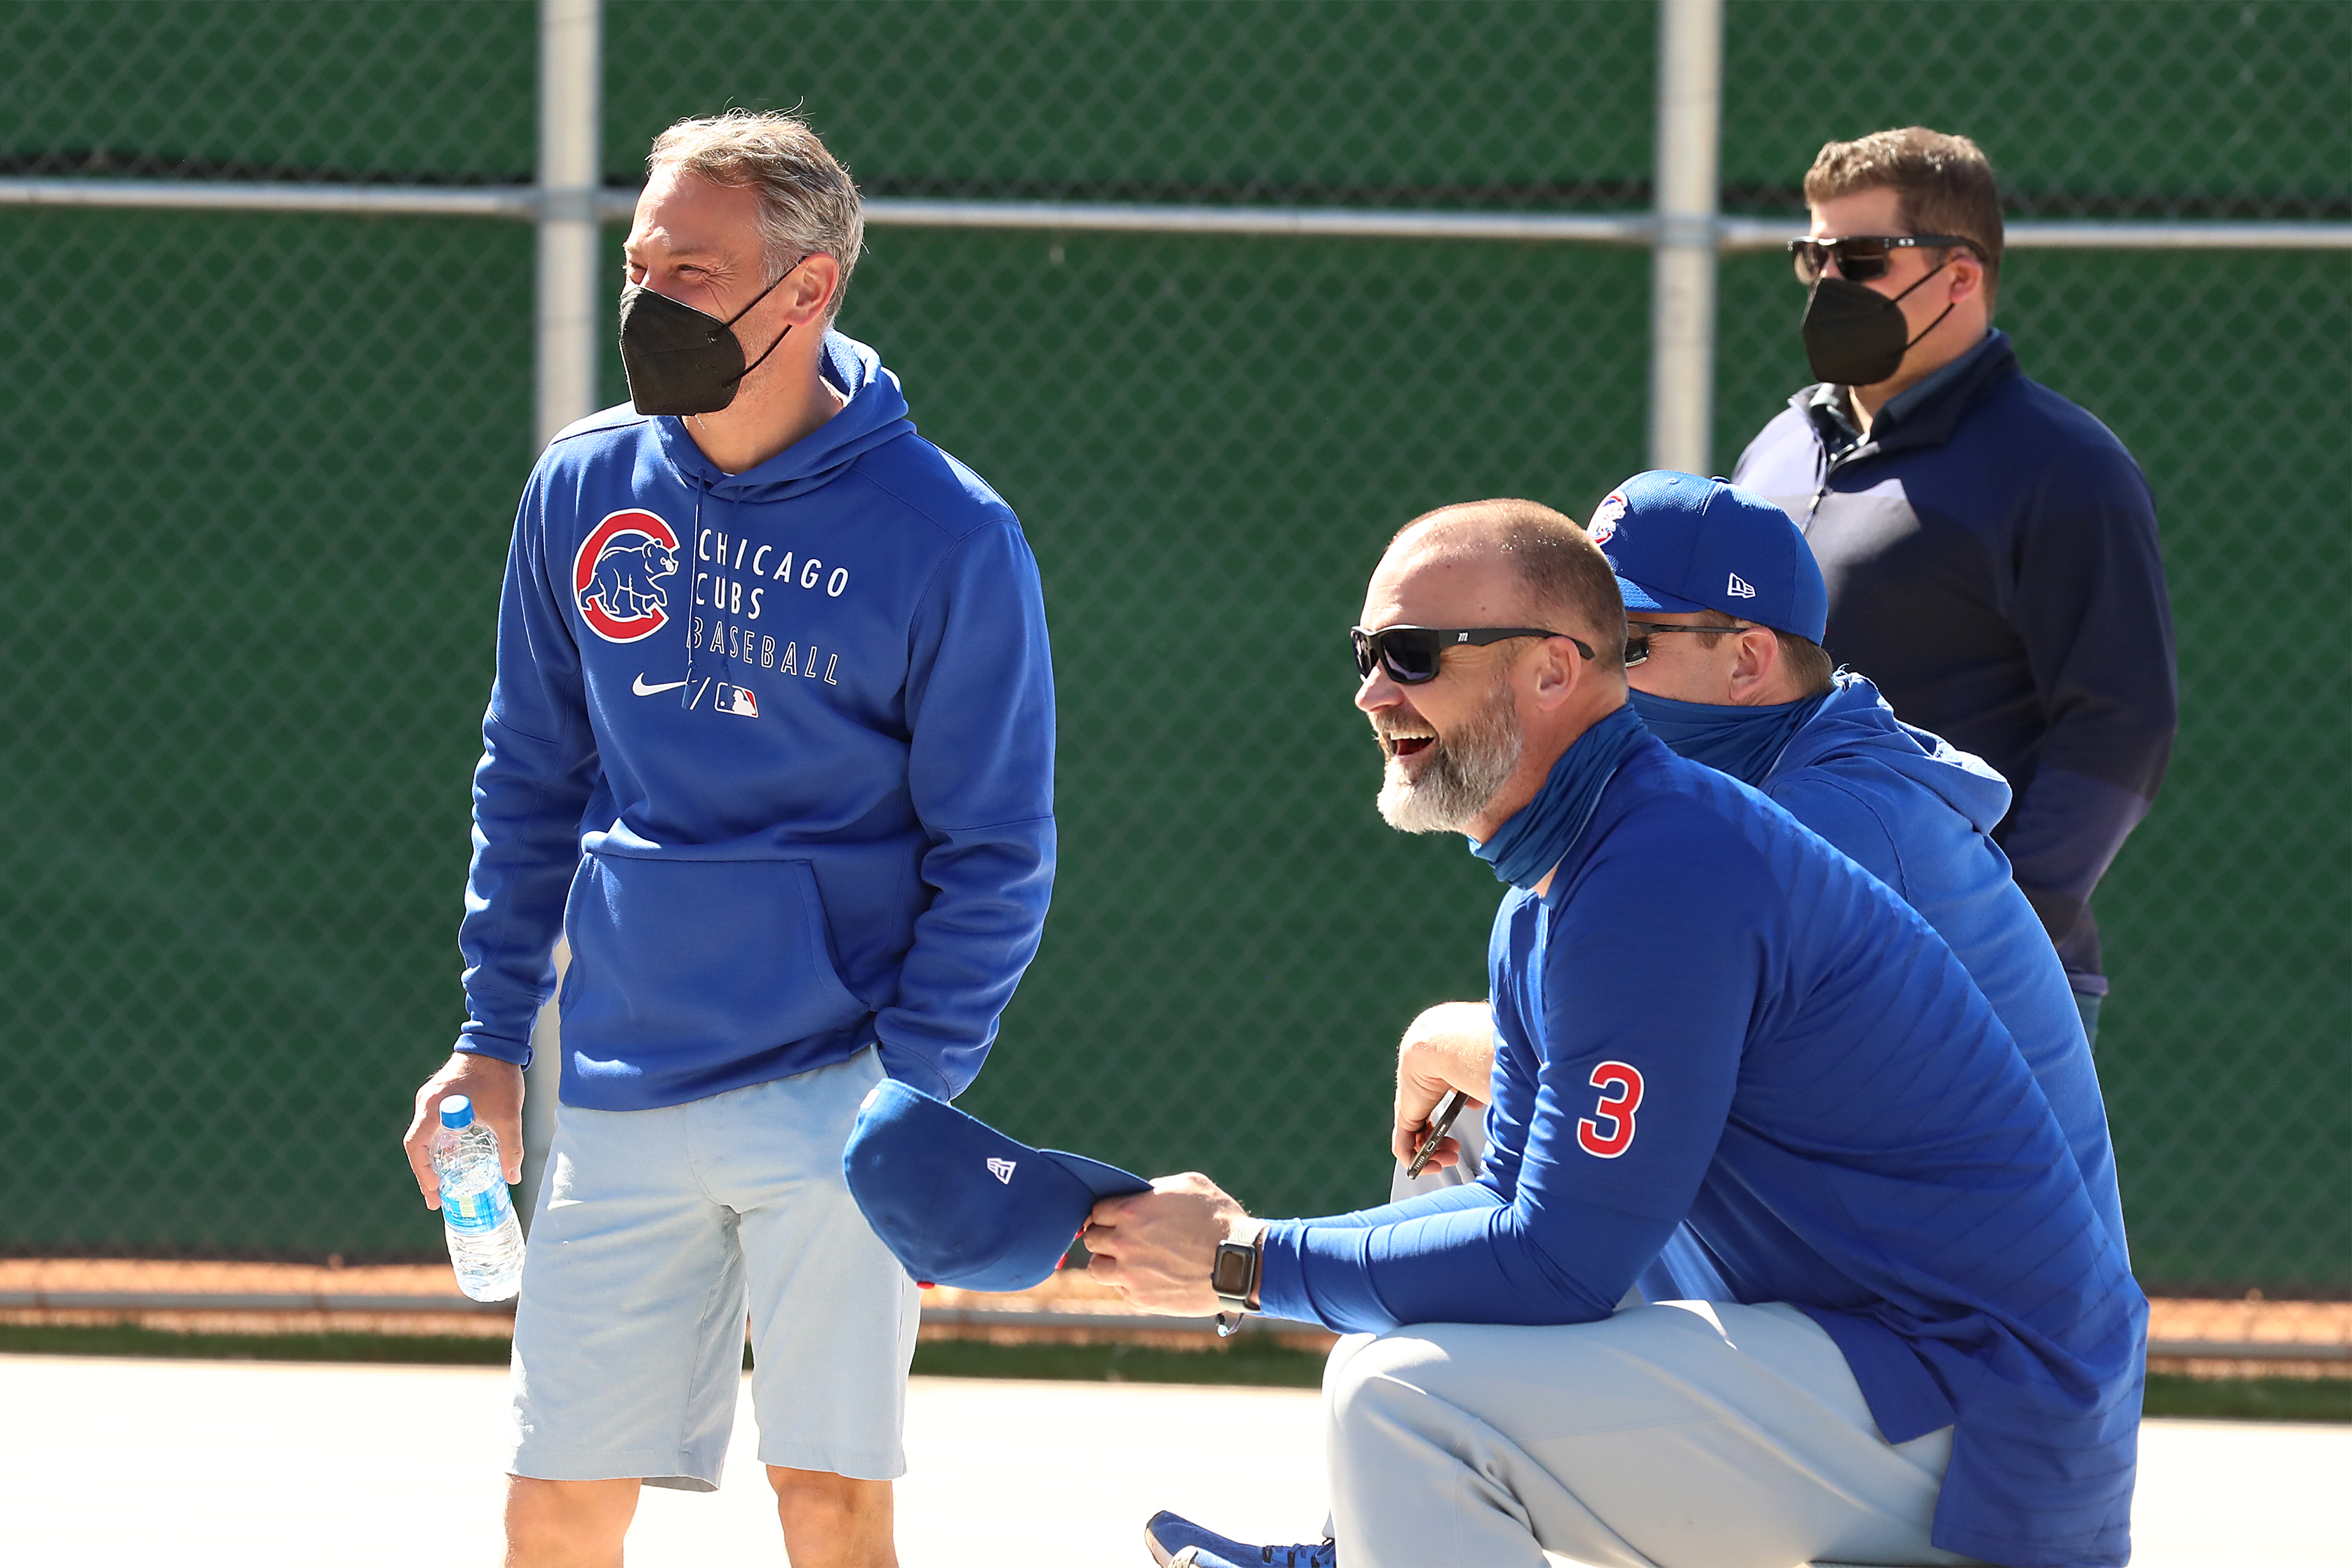 Cubs president Jed Hoyer and manager David Ross watch a spring training practice session.